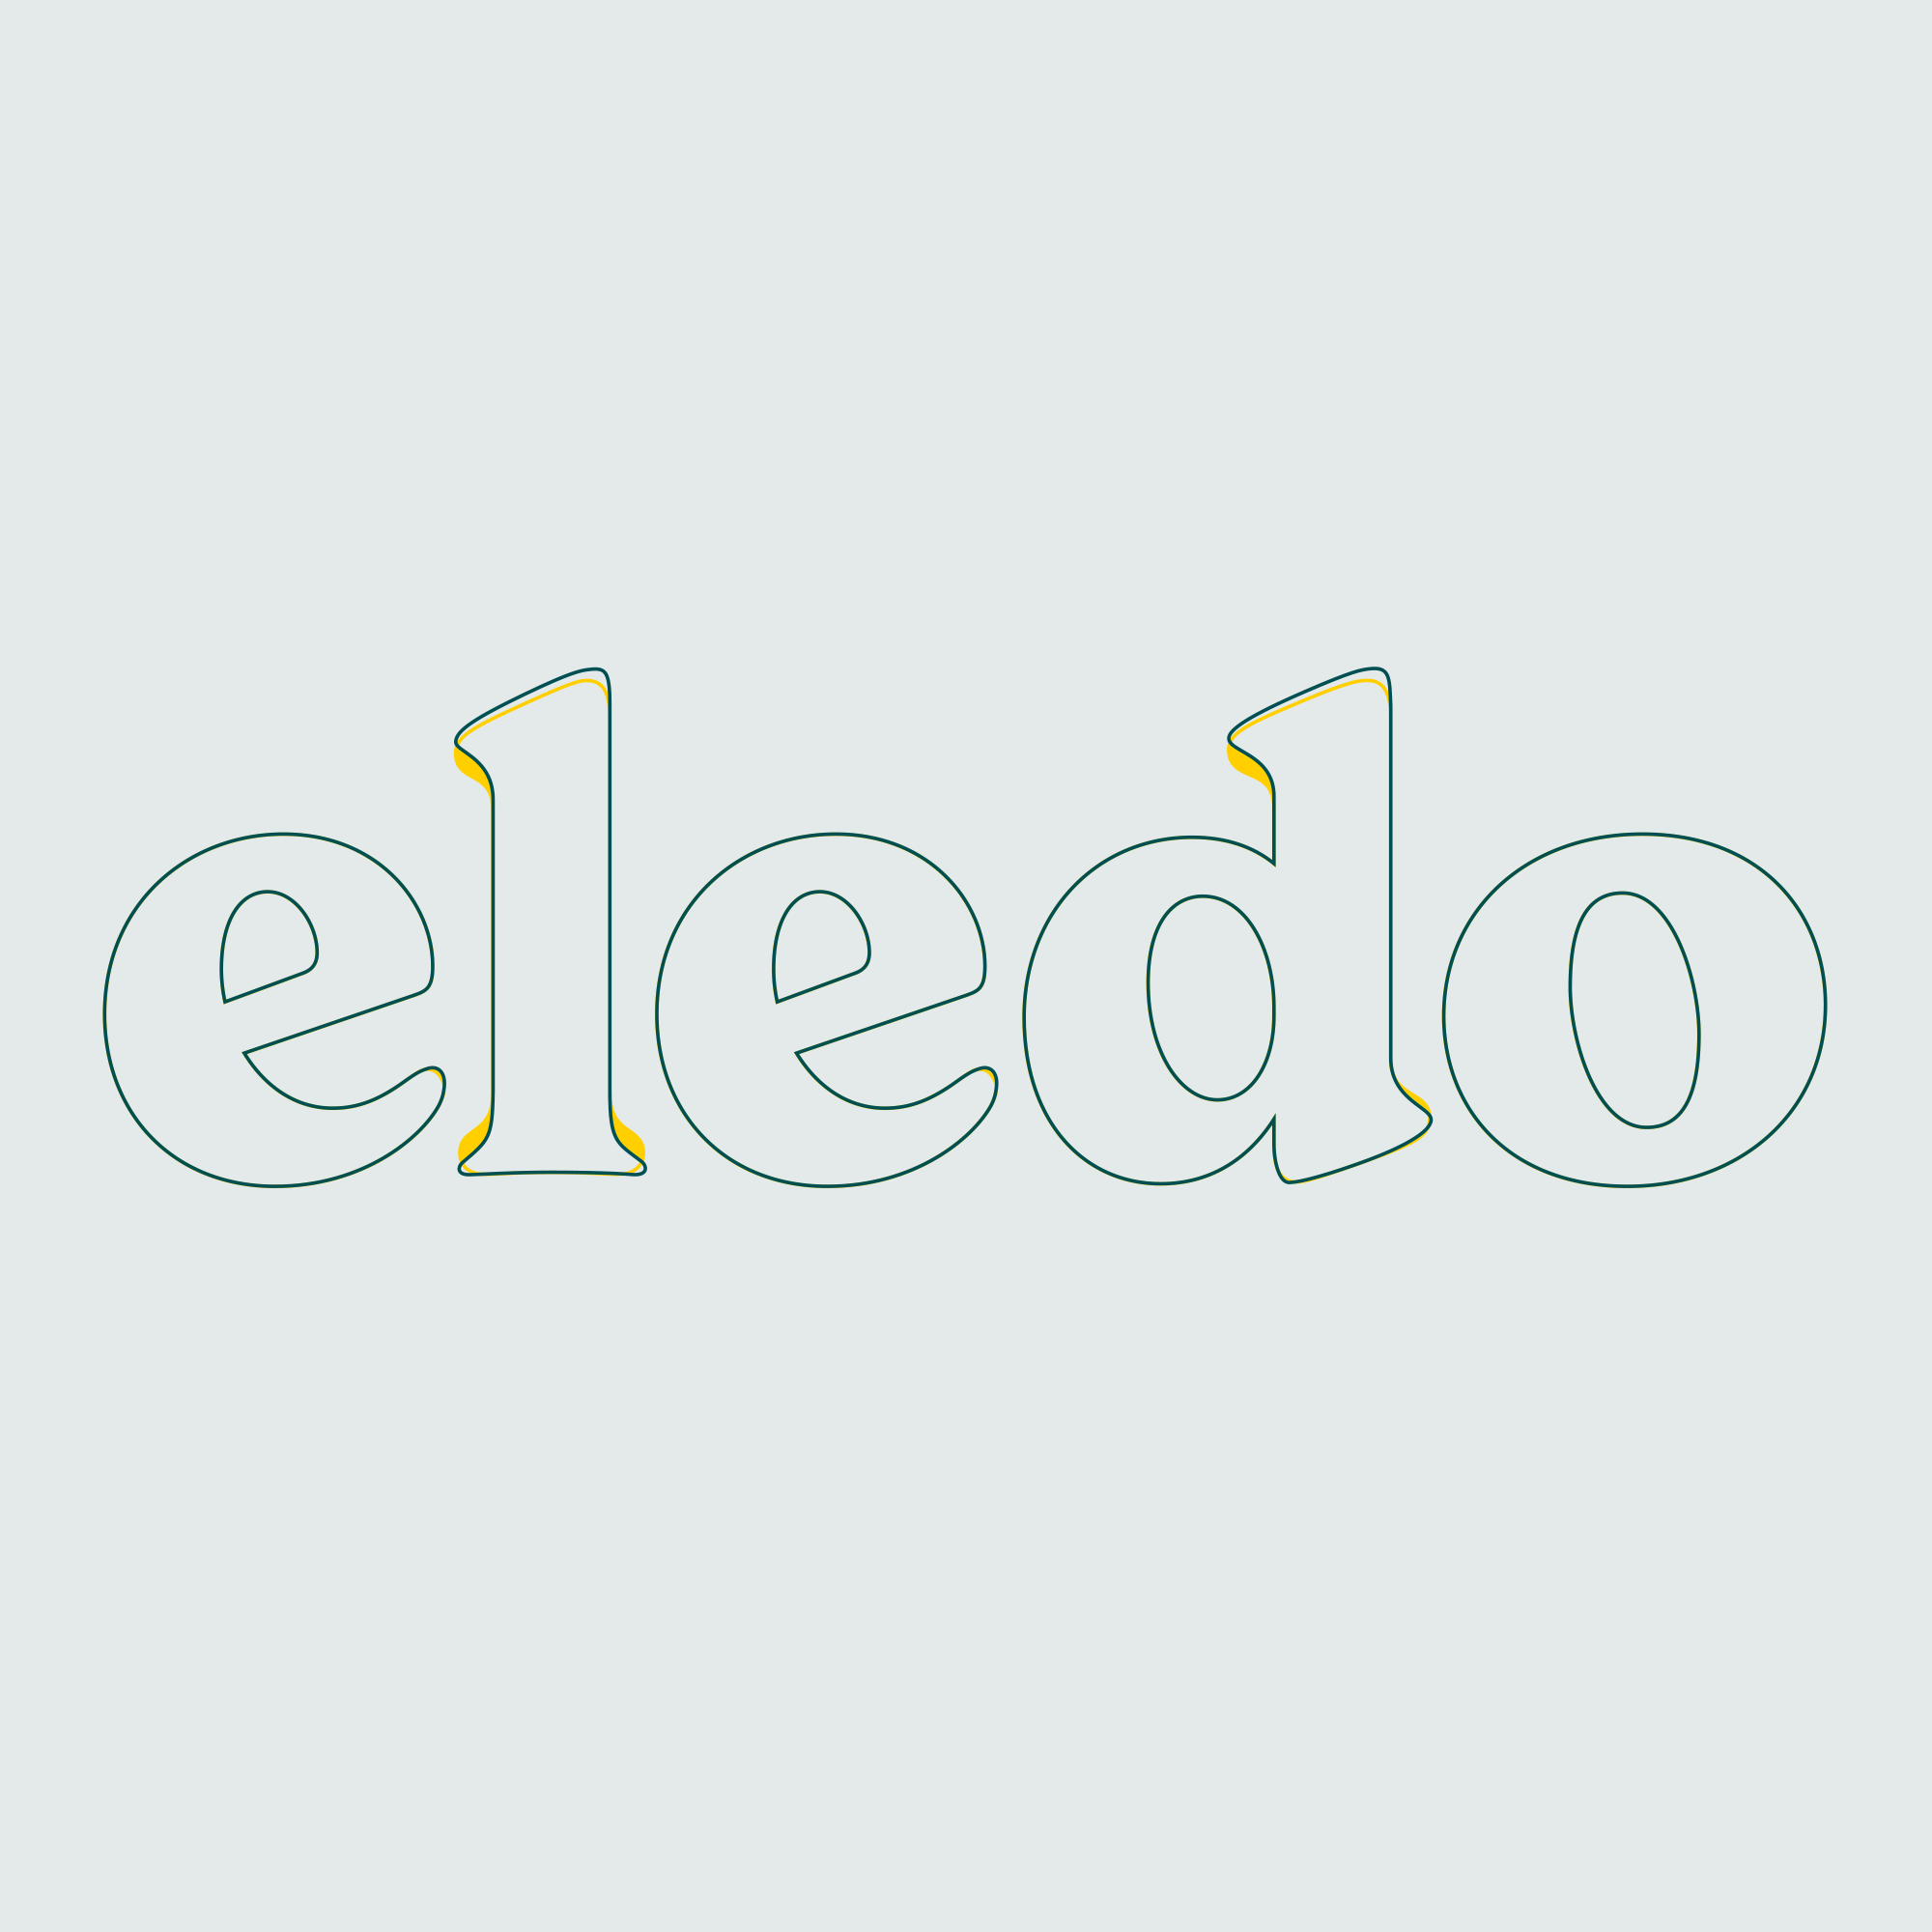 The Eledo logo in outline, showing the alterations made to the type face to create the logo.